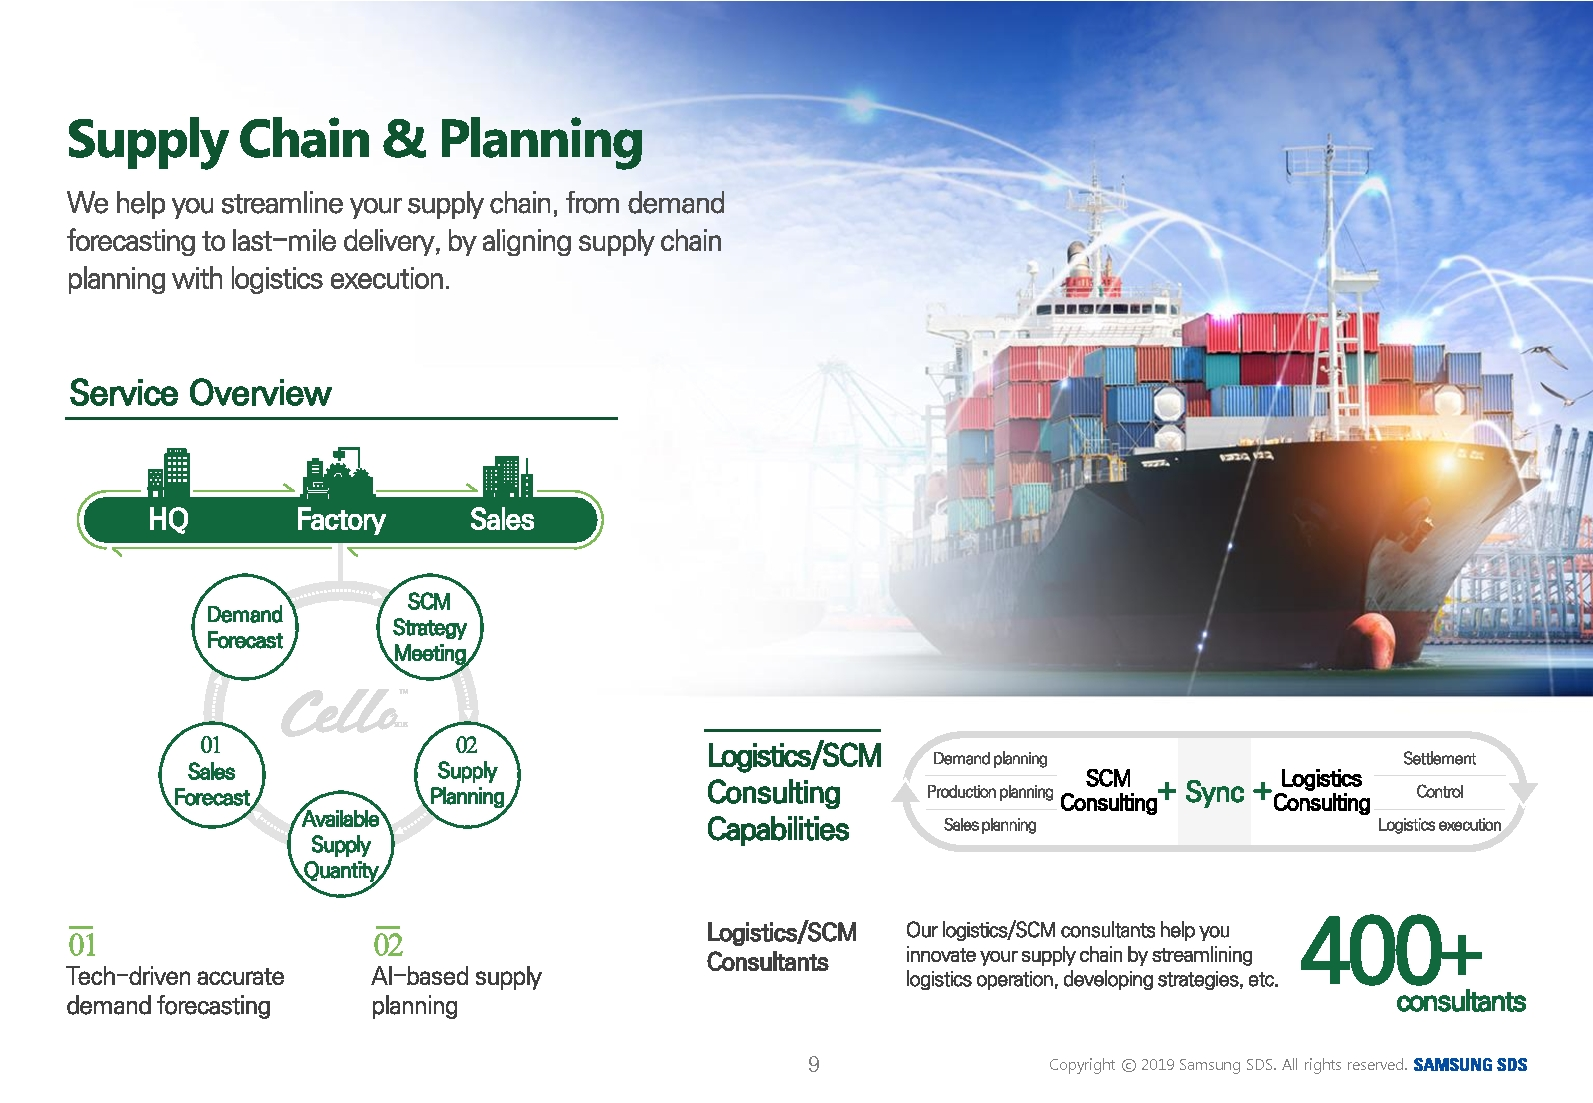 Supply chain & planning 